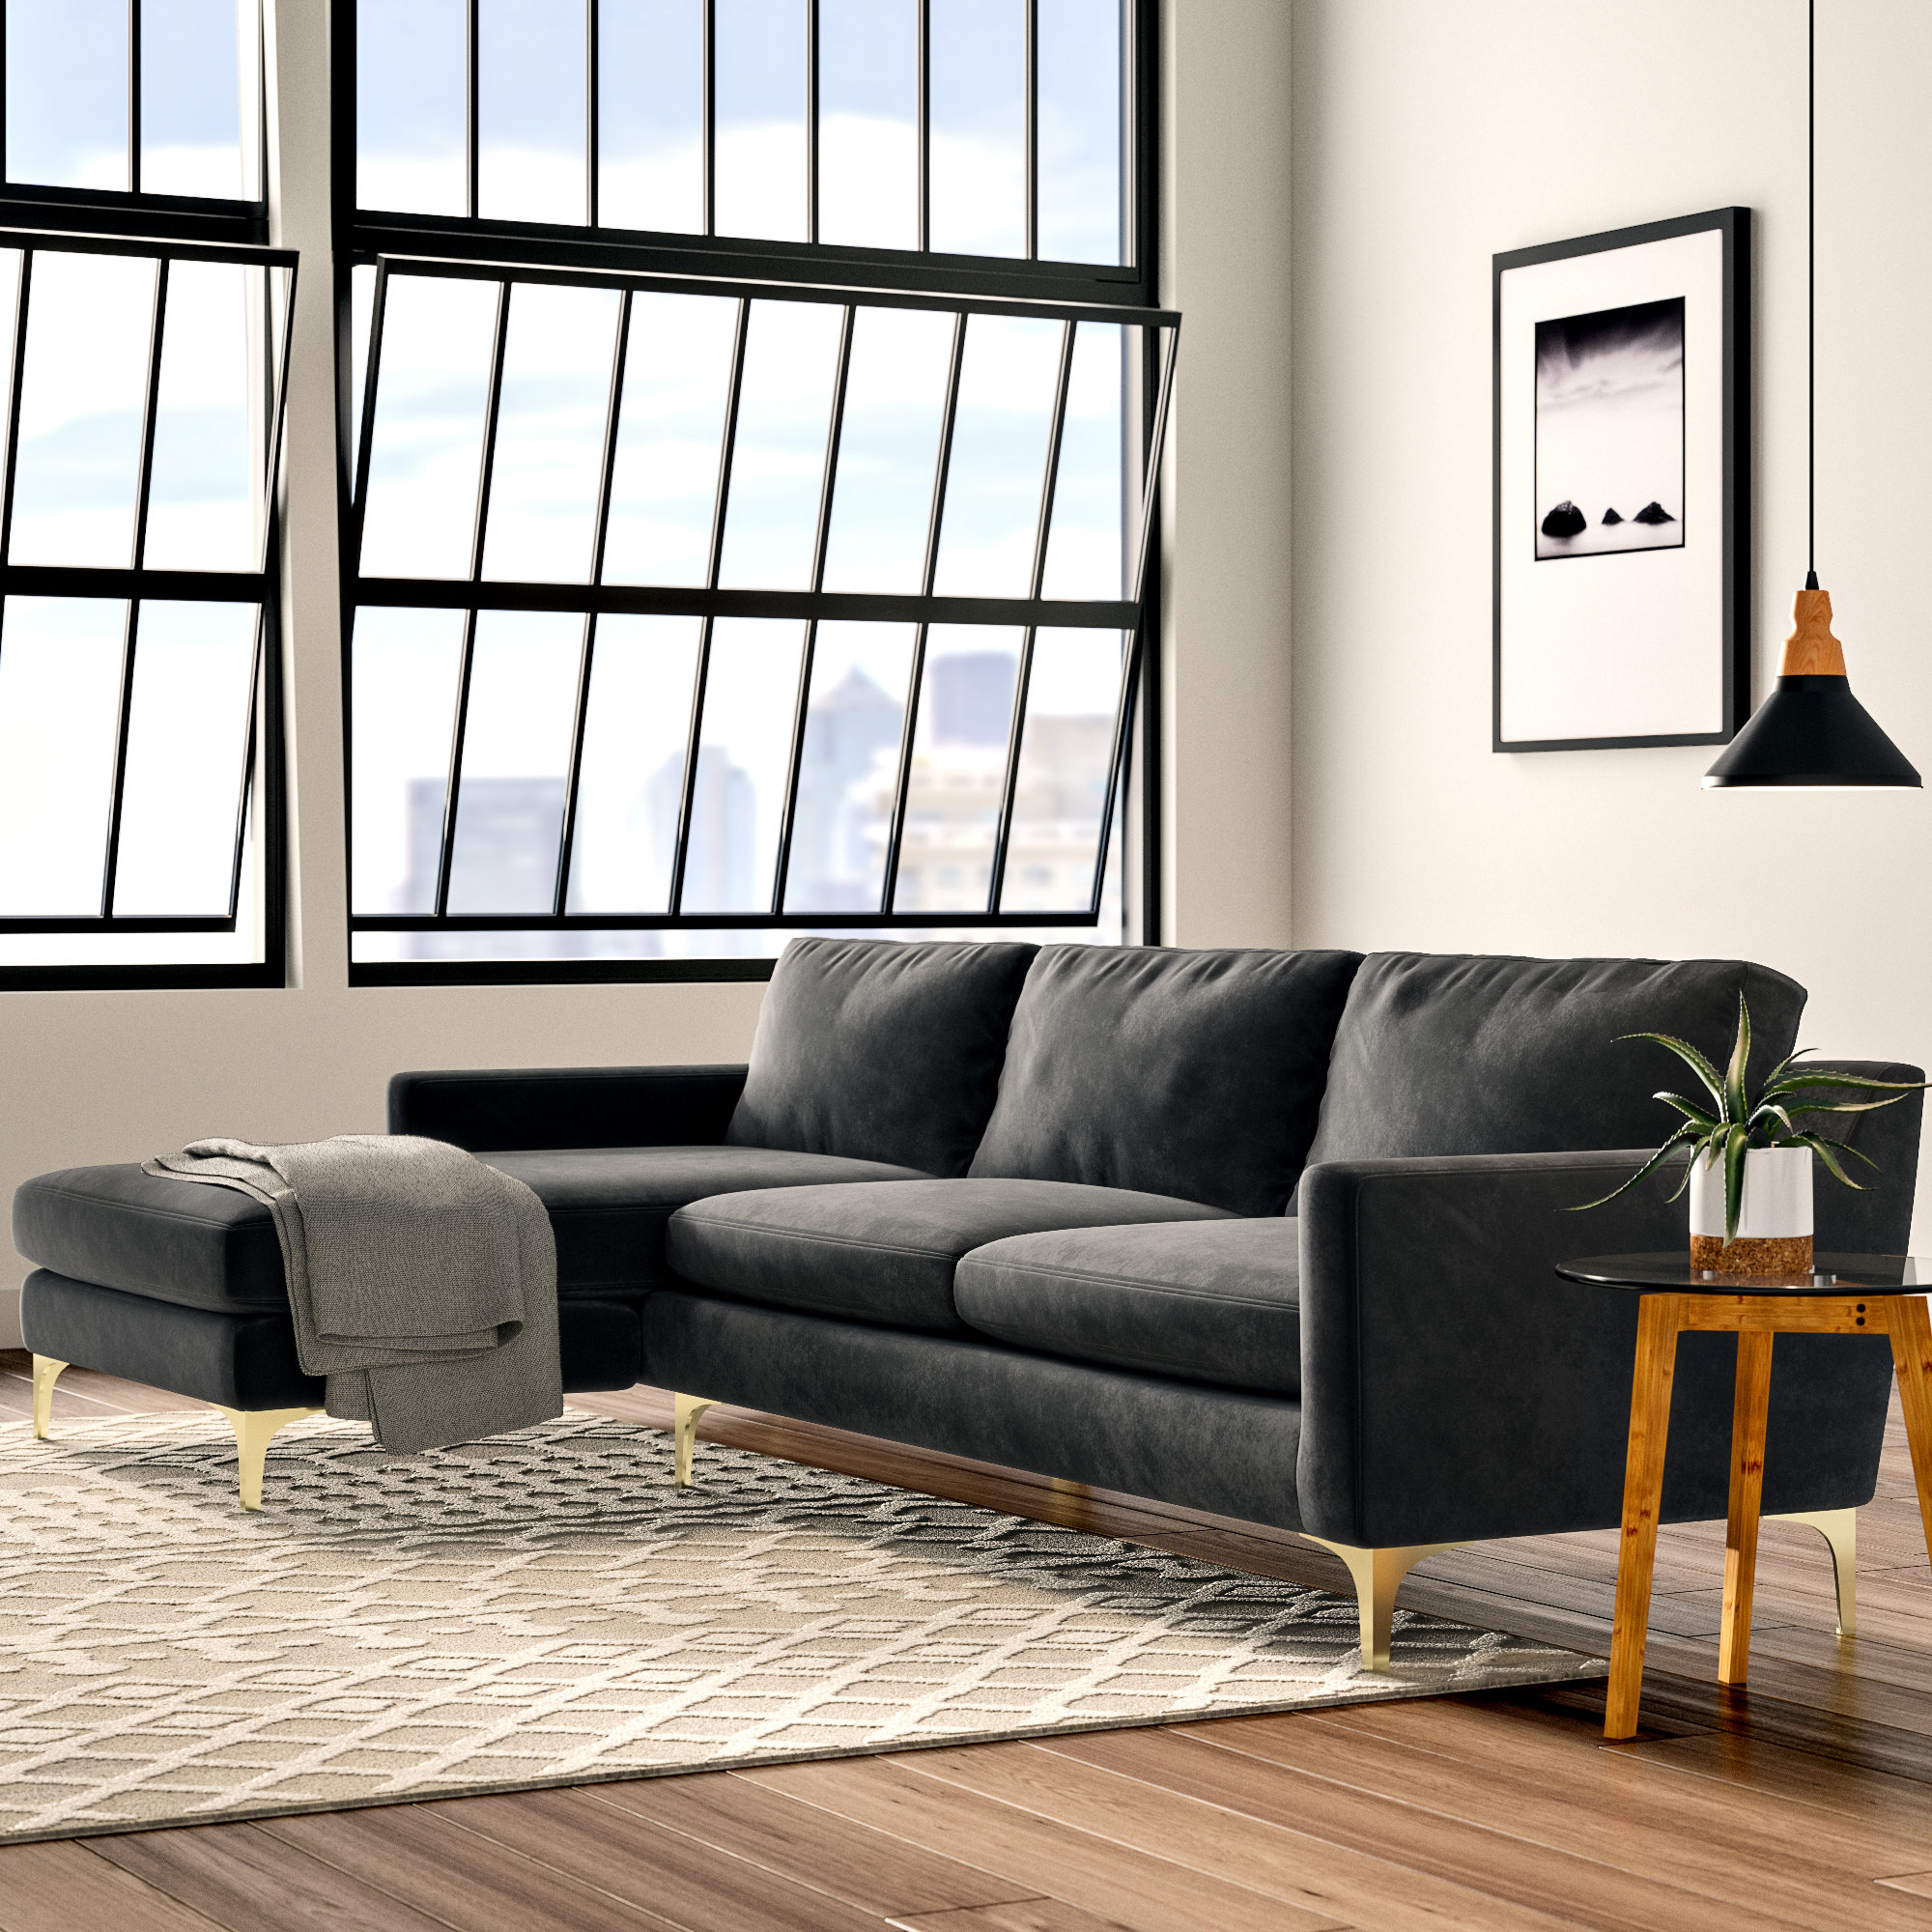 Wayfair Throughout Well Known Mesa Foam 2 Piece Sectionals (View 18 of 20)